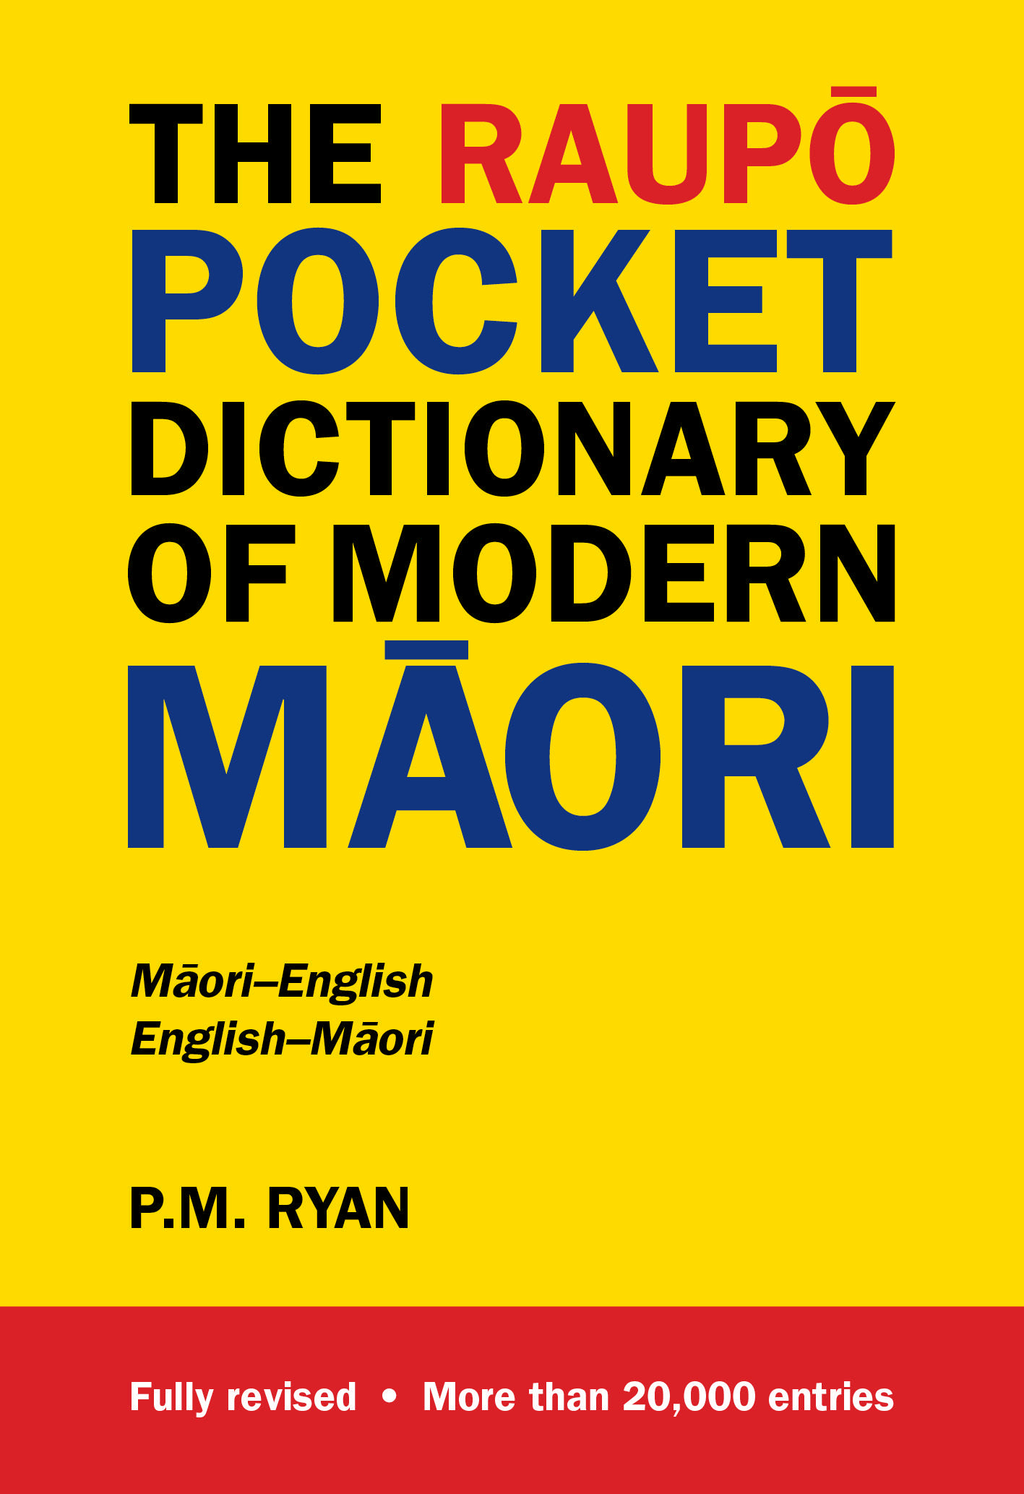 Raupo Pocket Dictionary of Modern Maori